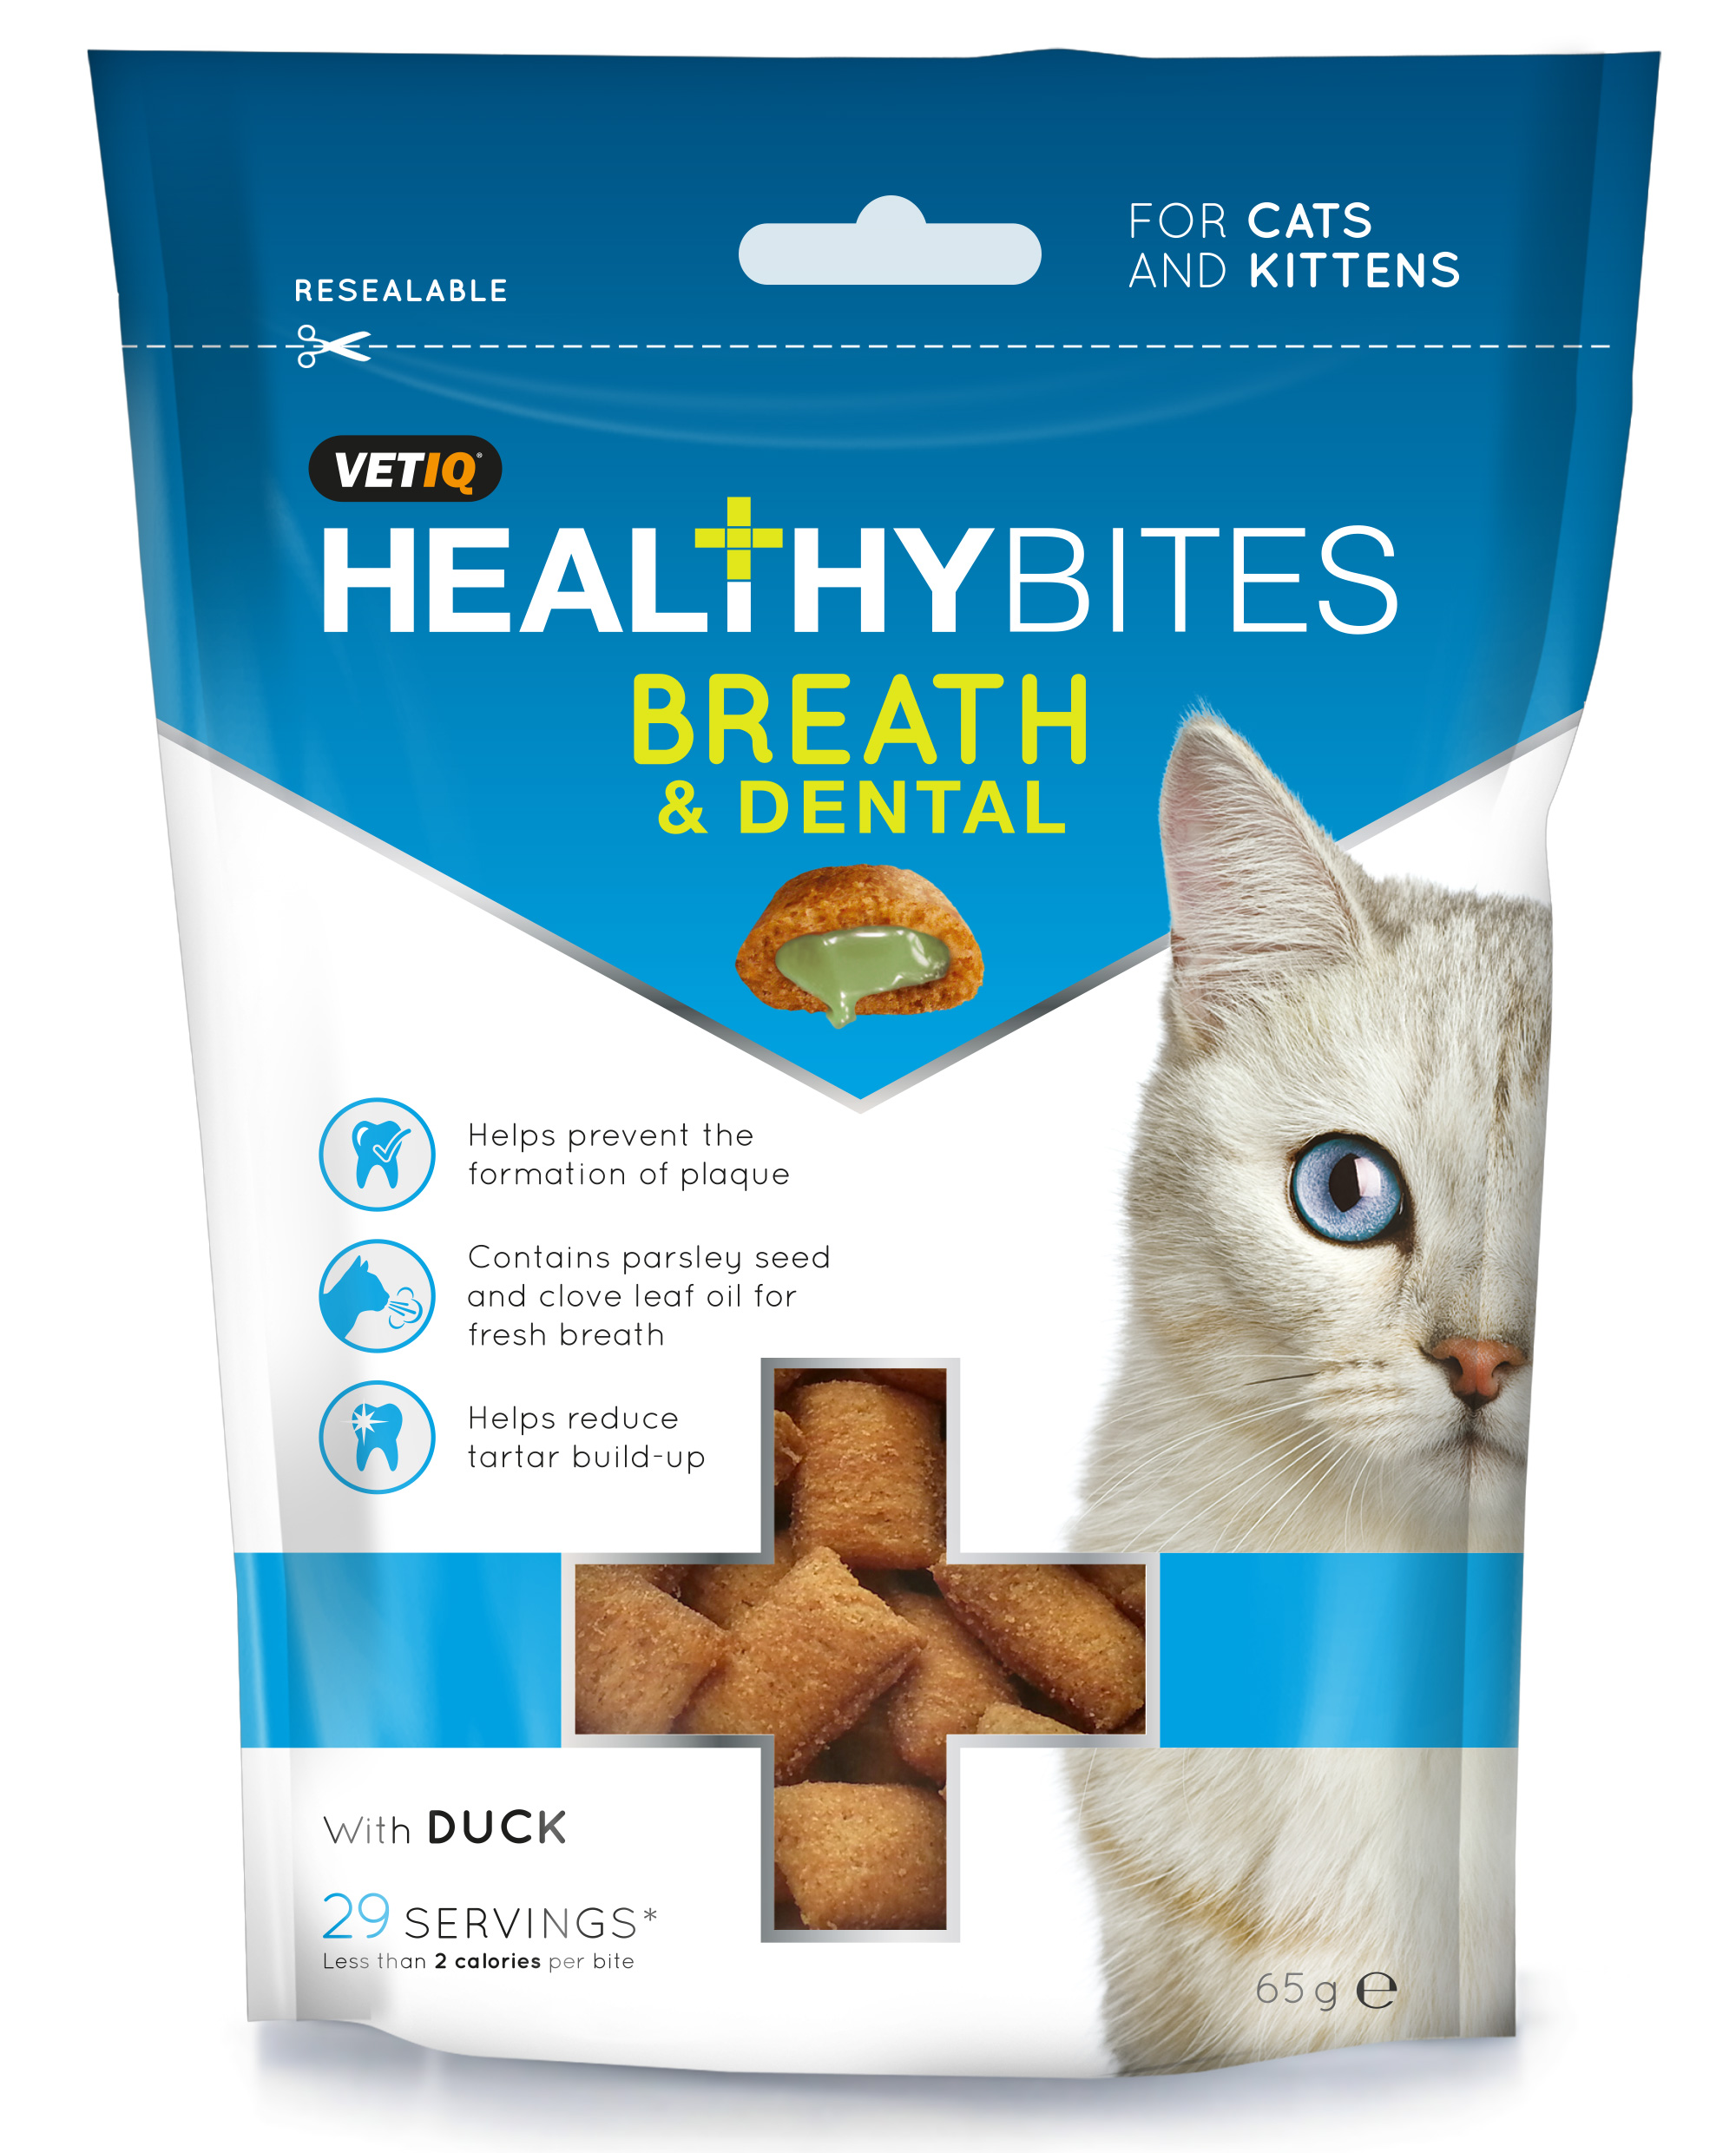 Healthy Bites Breath and Dental